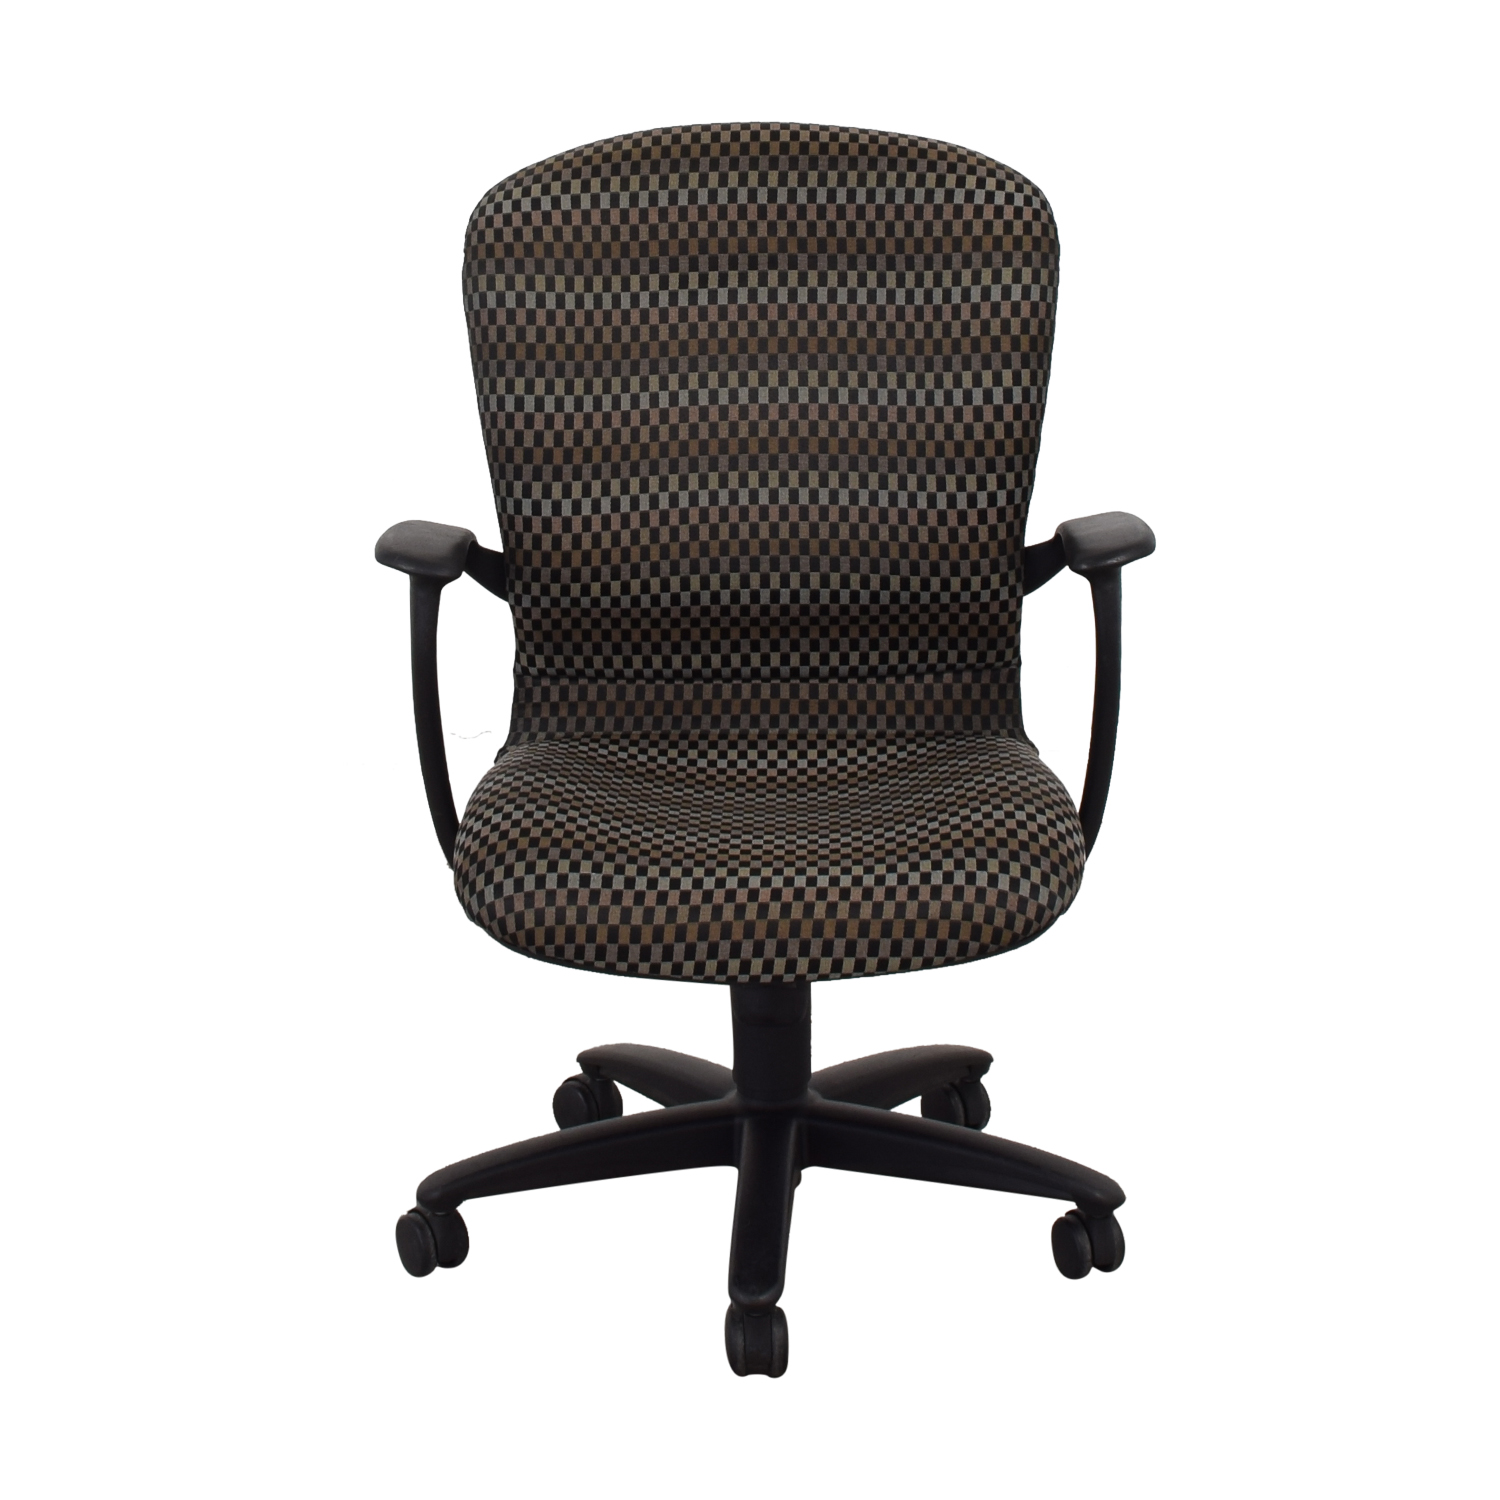 Haworth Haworth Improv Office Desk Chair Home Office Chairs